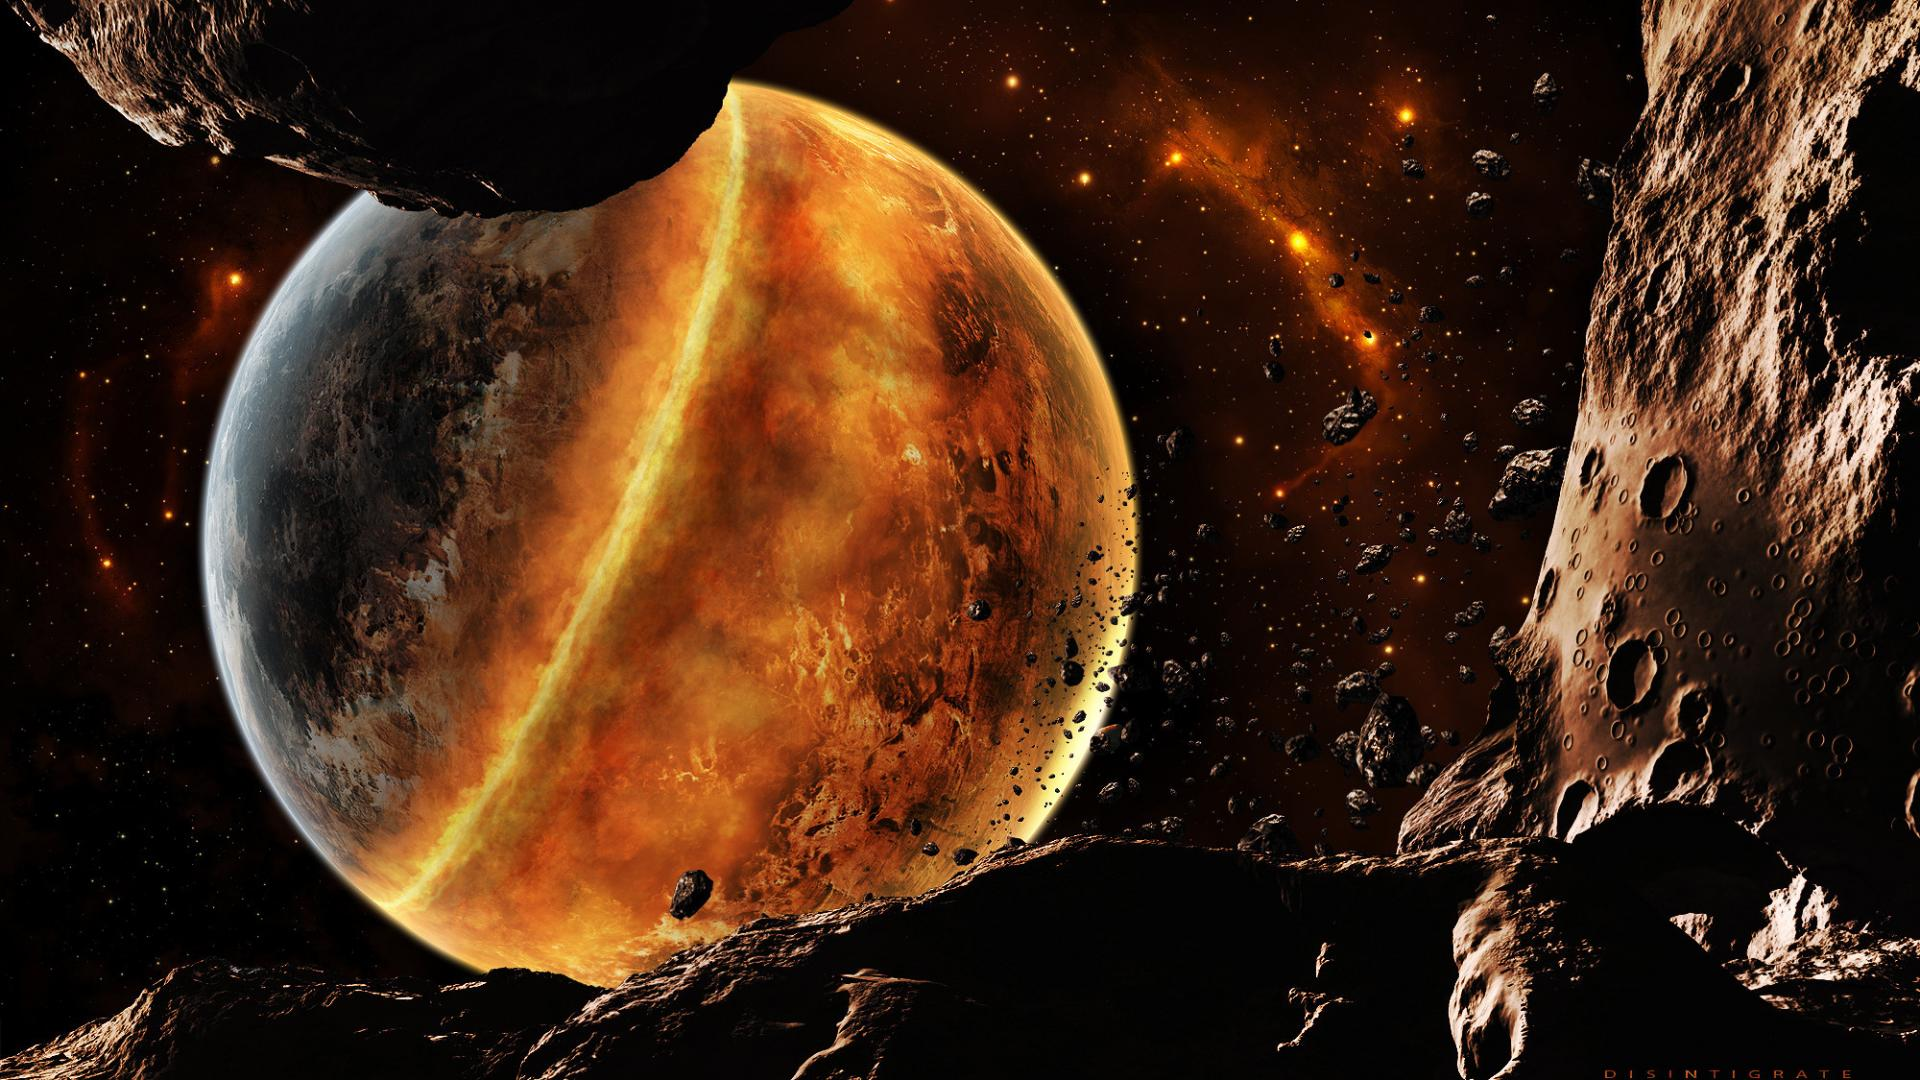 Asteroid wallpapers high quality download free - Space wallpaper large ...